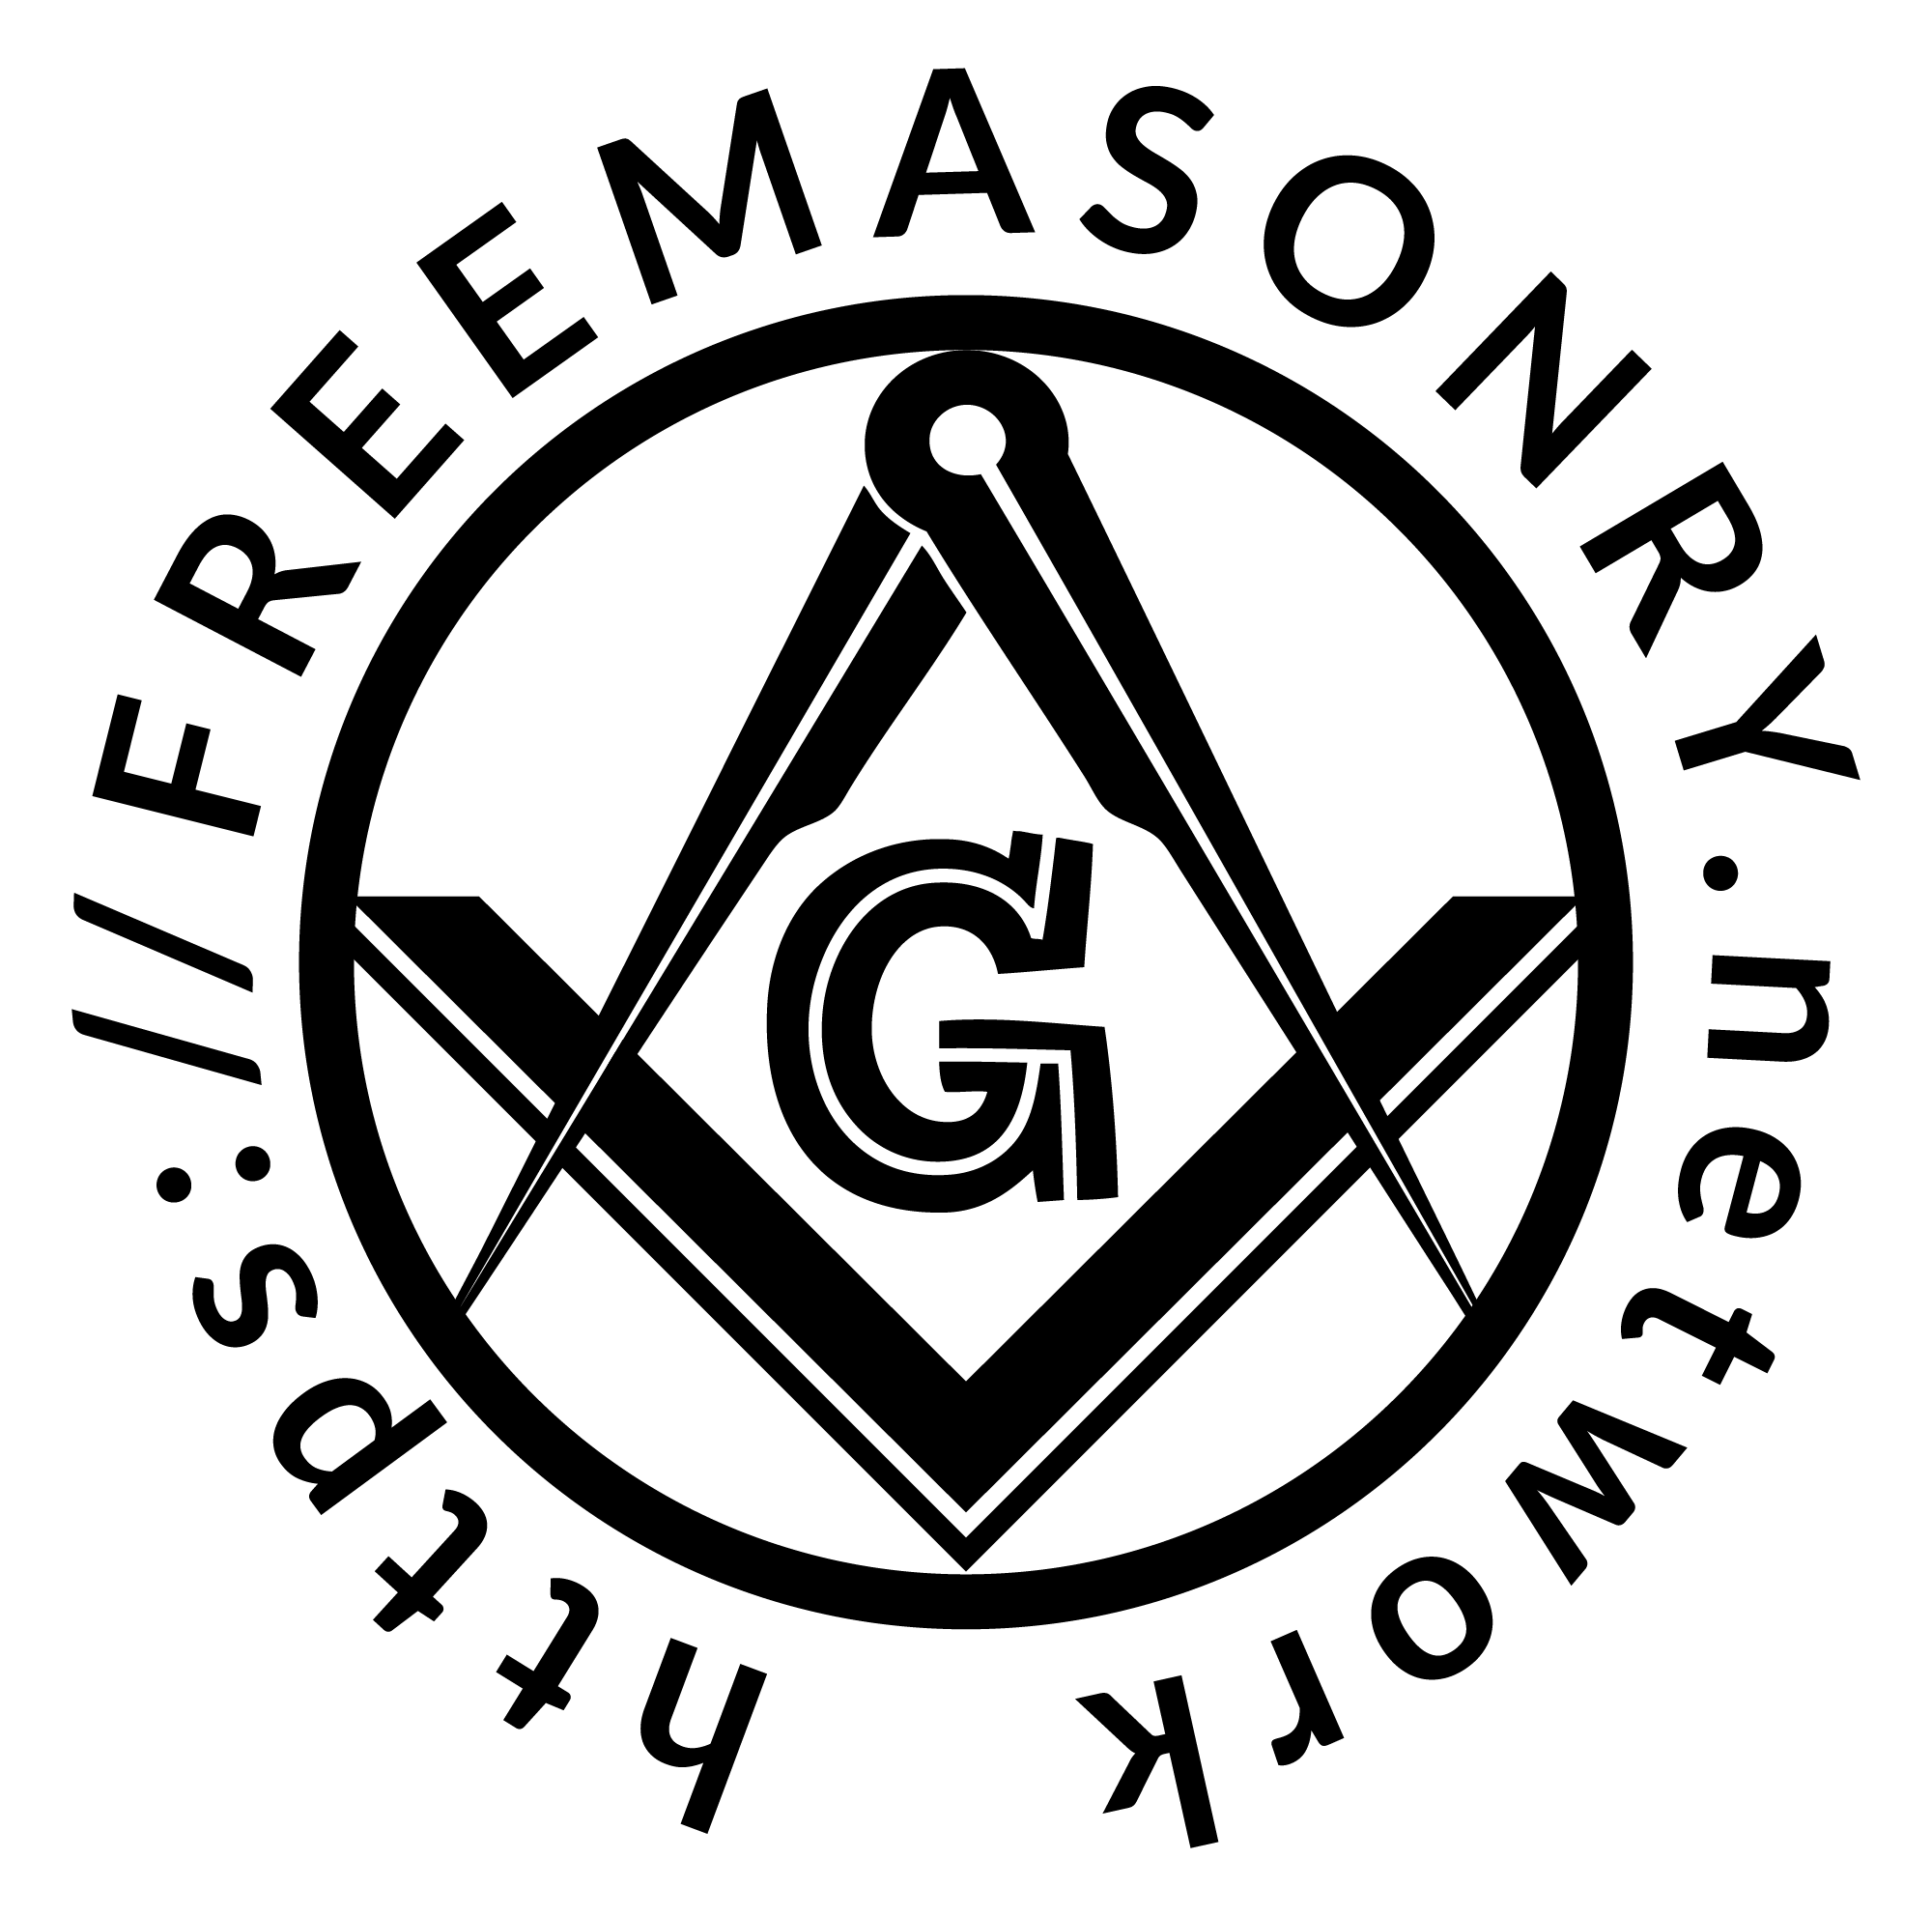 FREEMASONRY IN PENNSYLVANIA